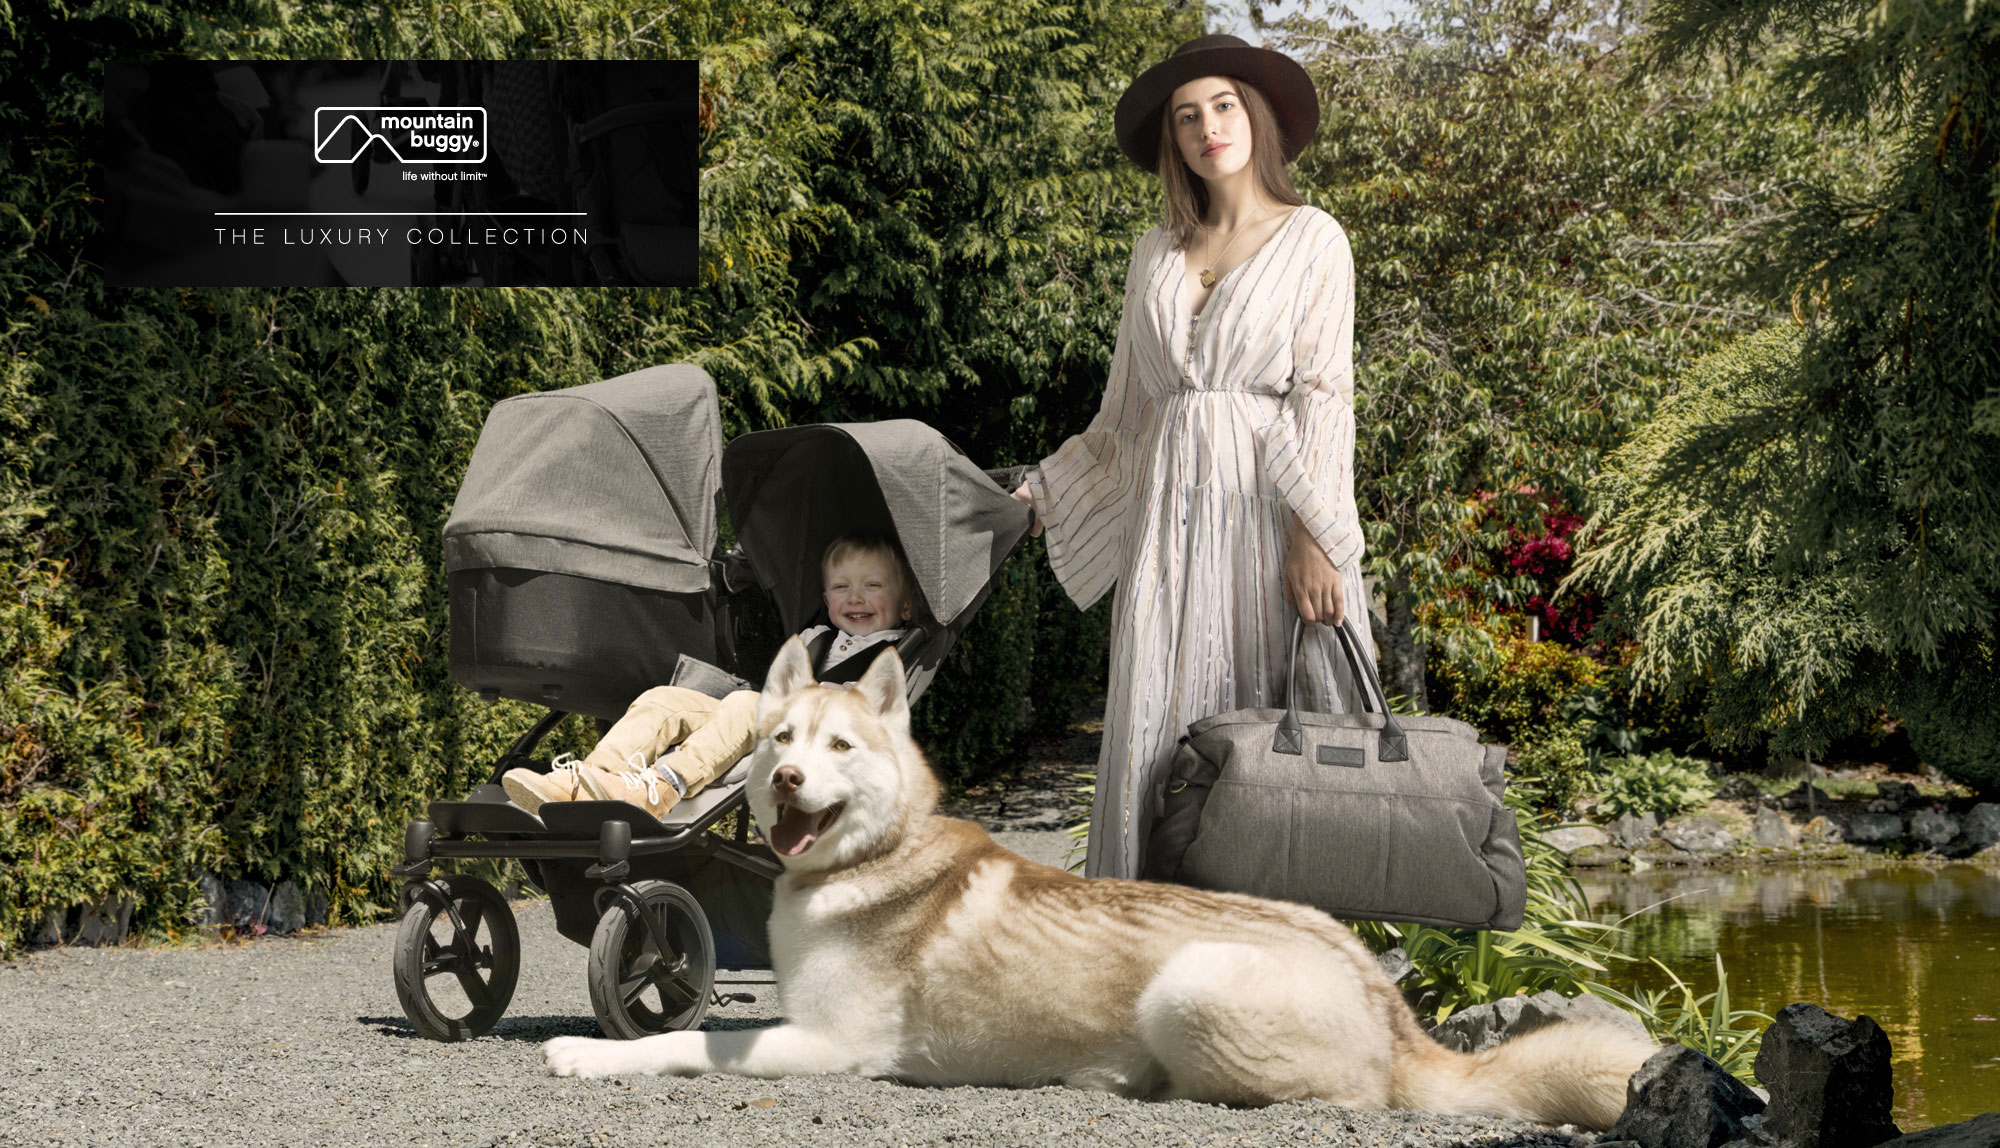 Mountain Buggy Luxury Duet Range